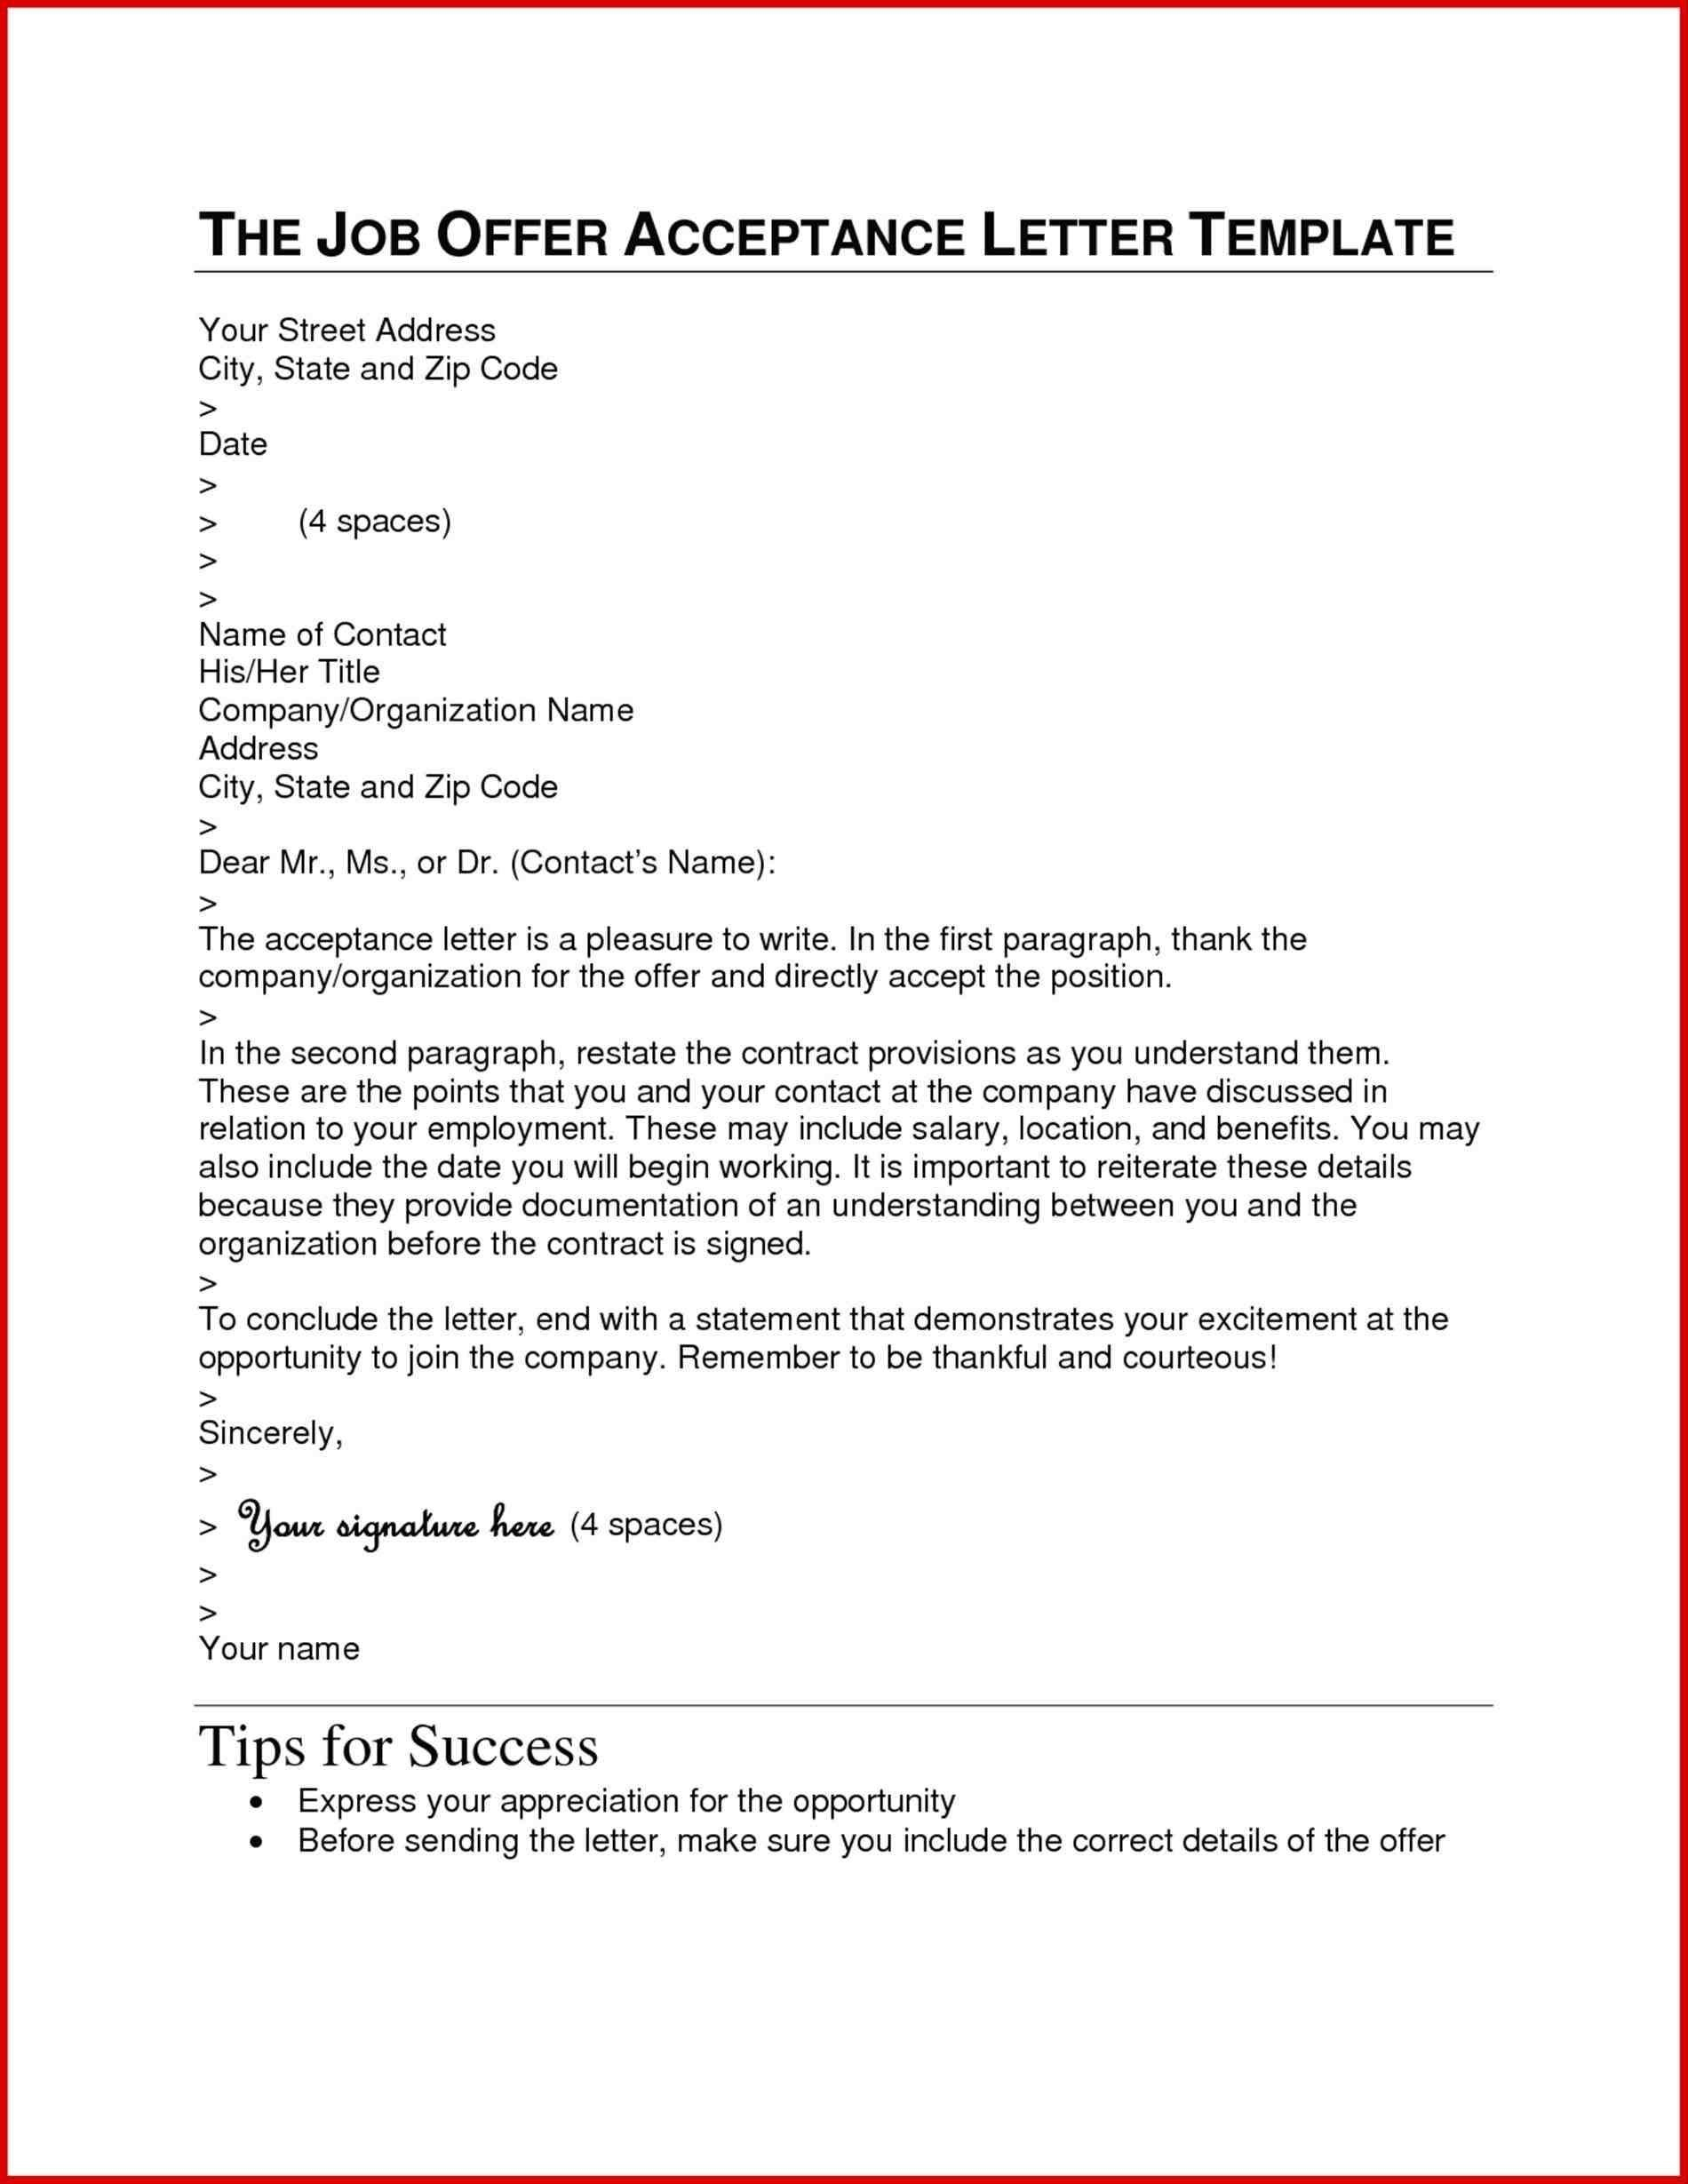 Job Offer Acceptance Letter Template - Job Acceptance Letter Doc Refrence Letter format Sample Doc Best